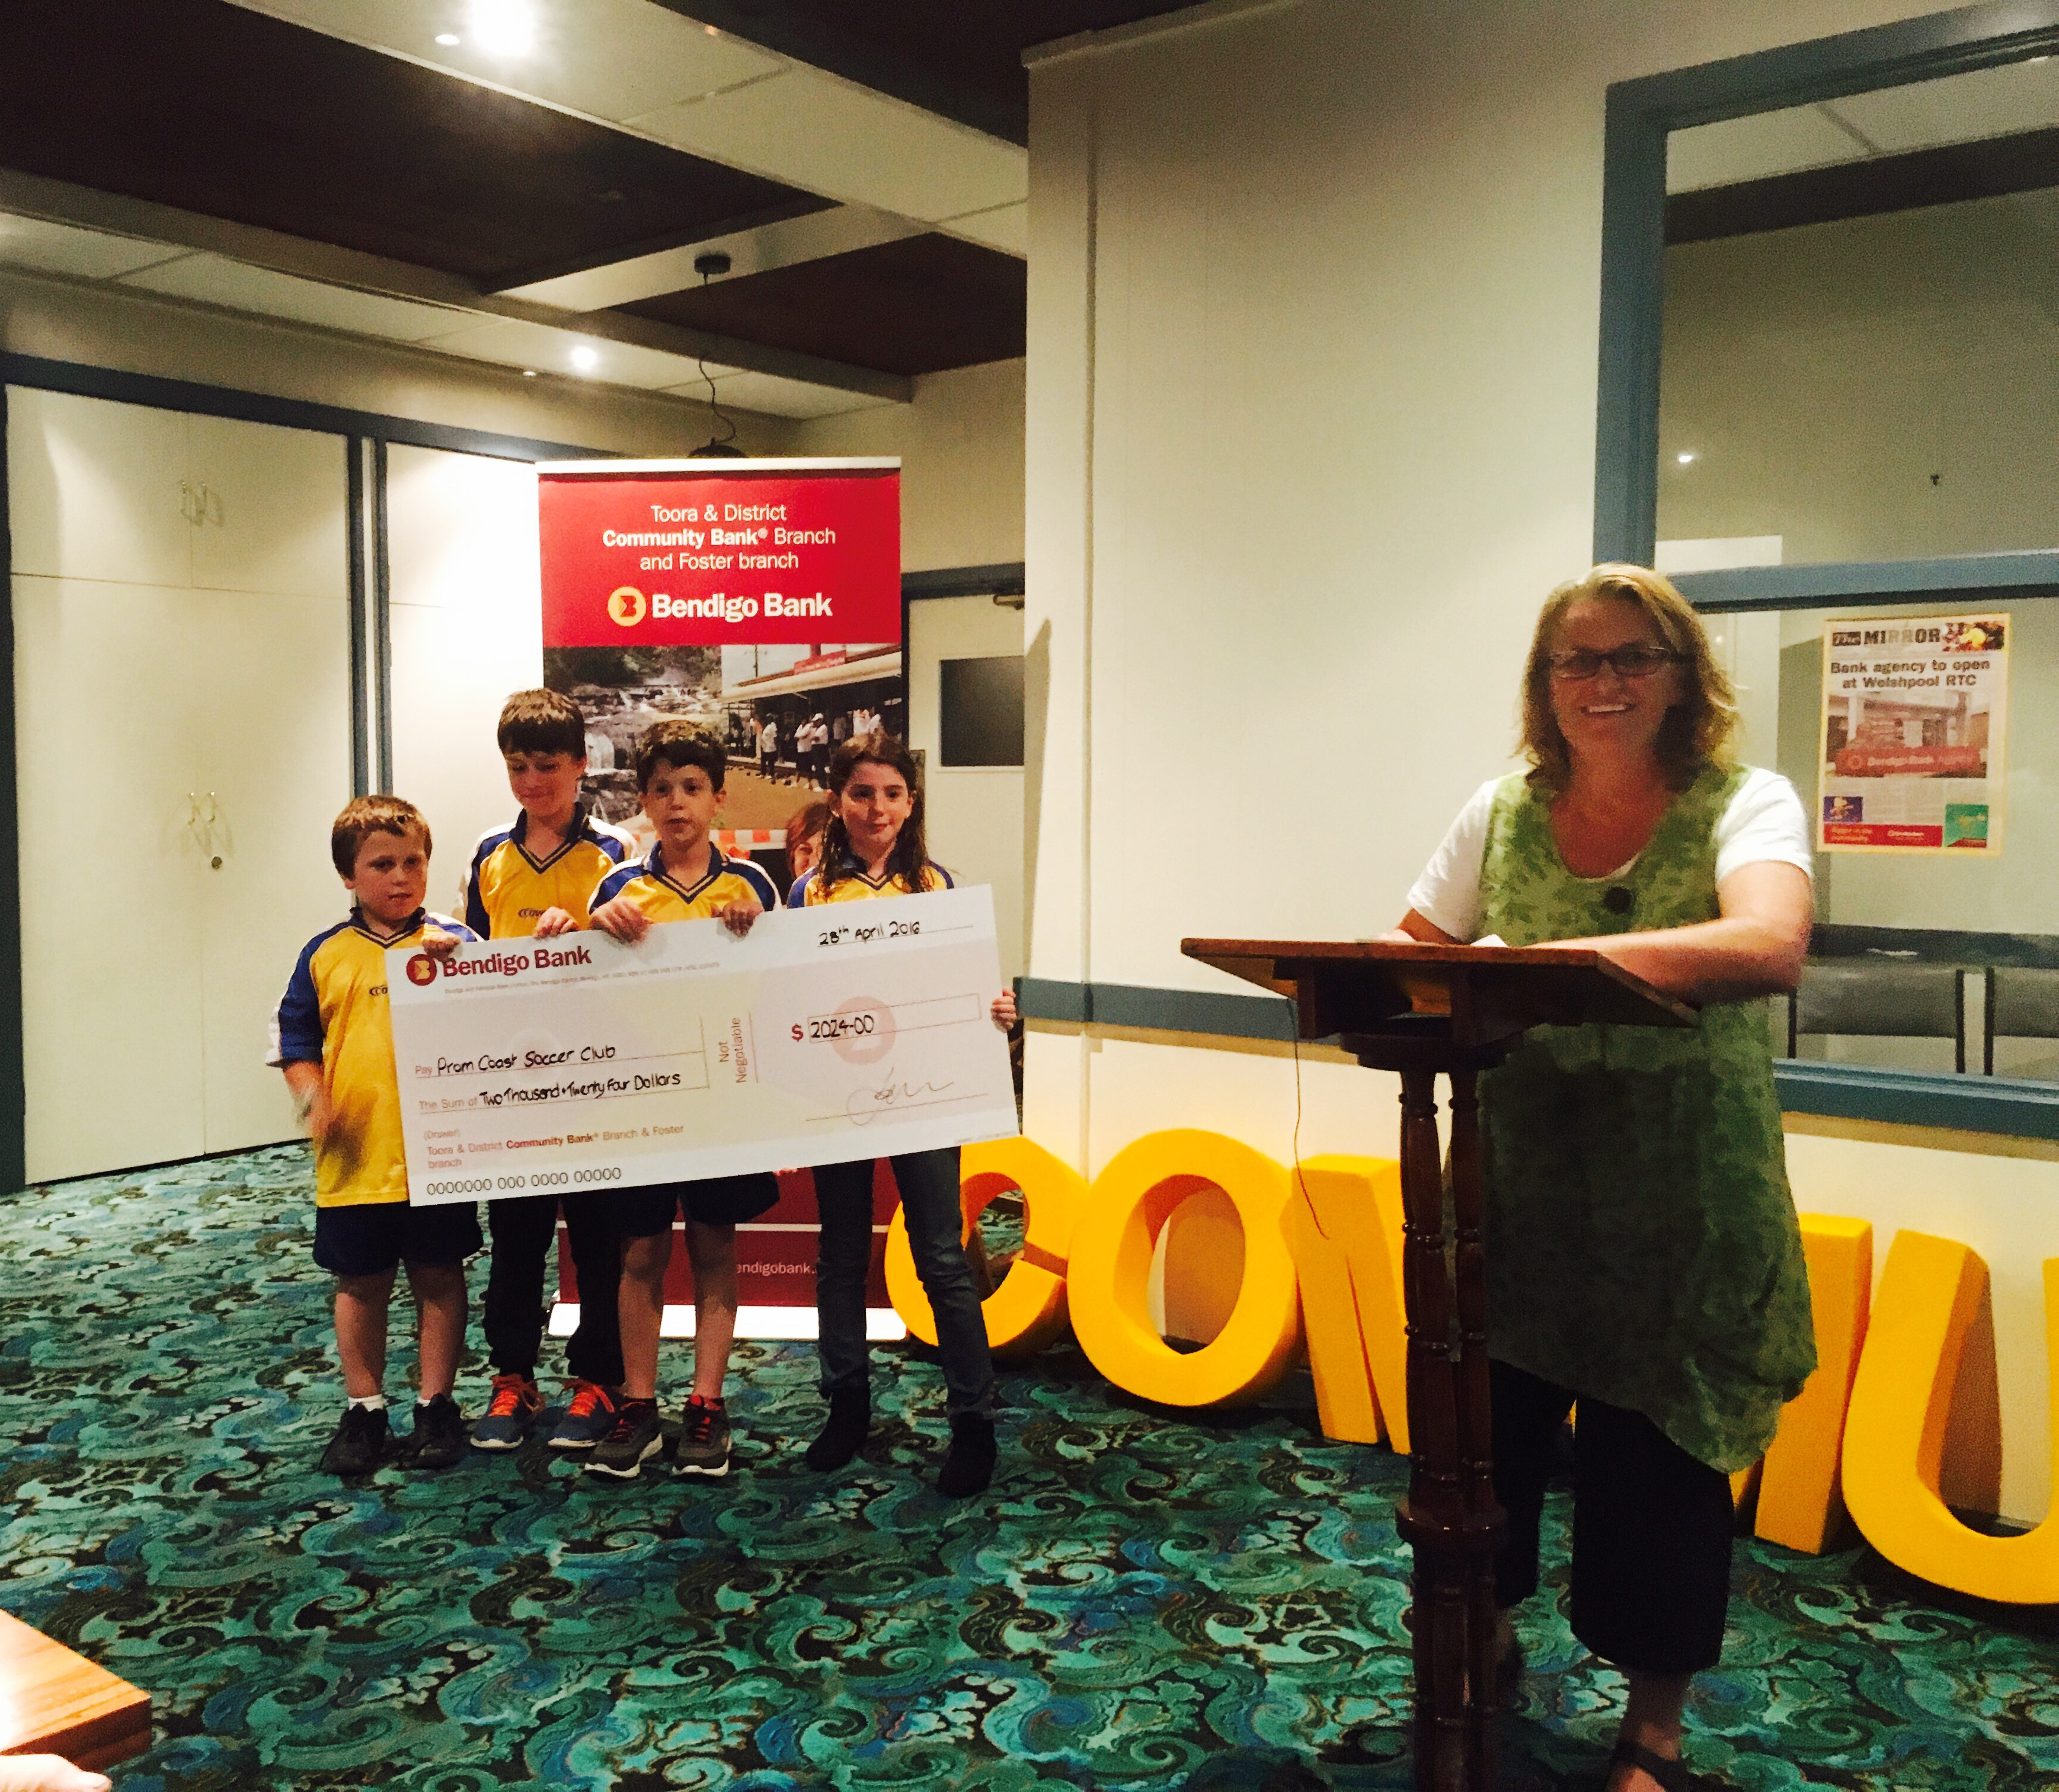 Congratulations to the Prom Coast Soccer Club on receiving a grant from the Bendigo Bank to go towards a new set of goals for the club